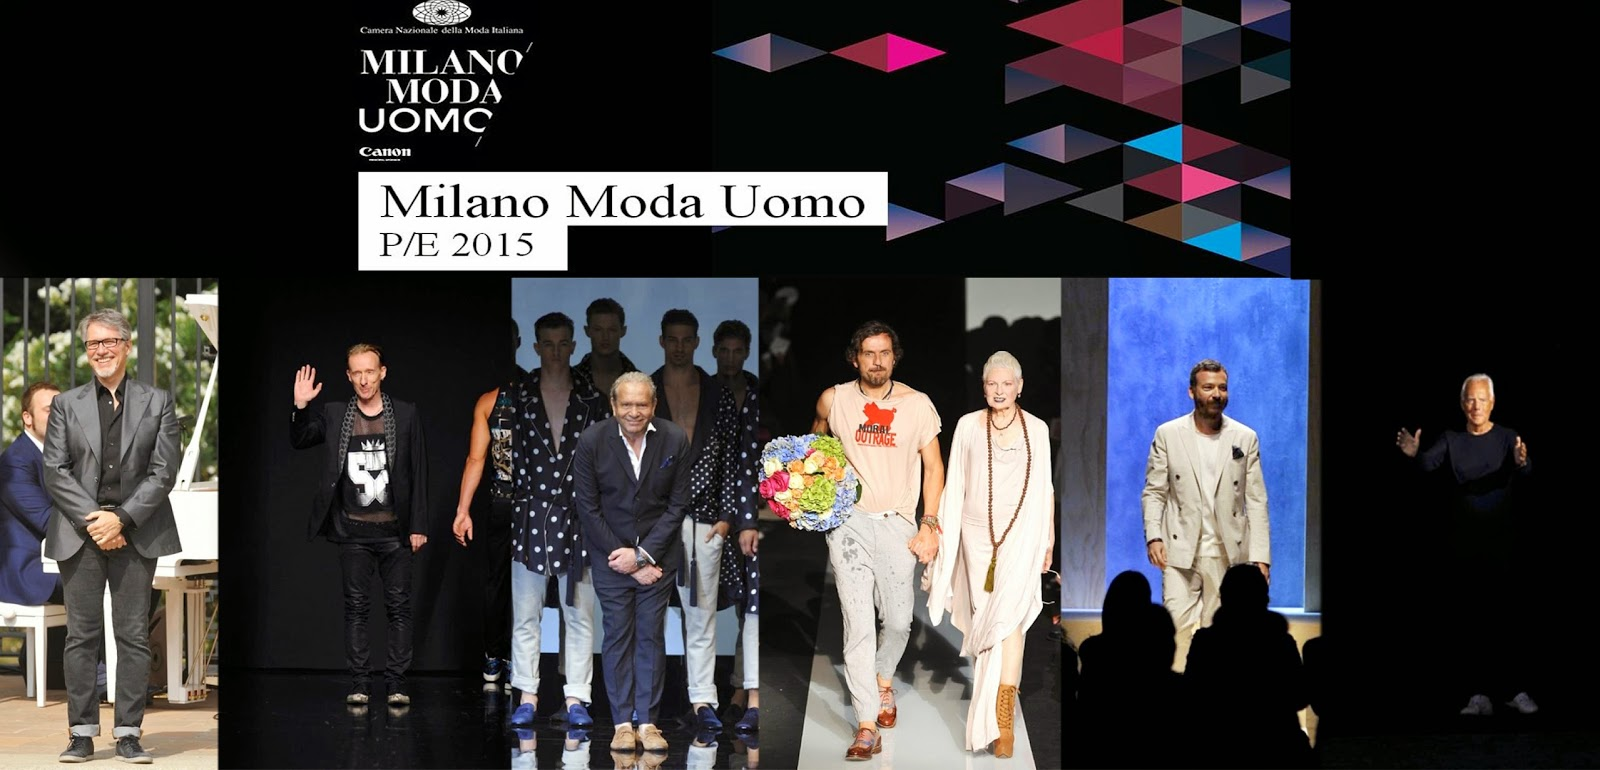 Eniwhere Fashion - Milano Moda Uomo - Primavera Estate 2015 - Stilisti